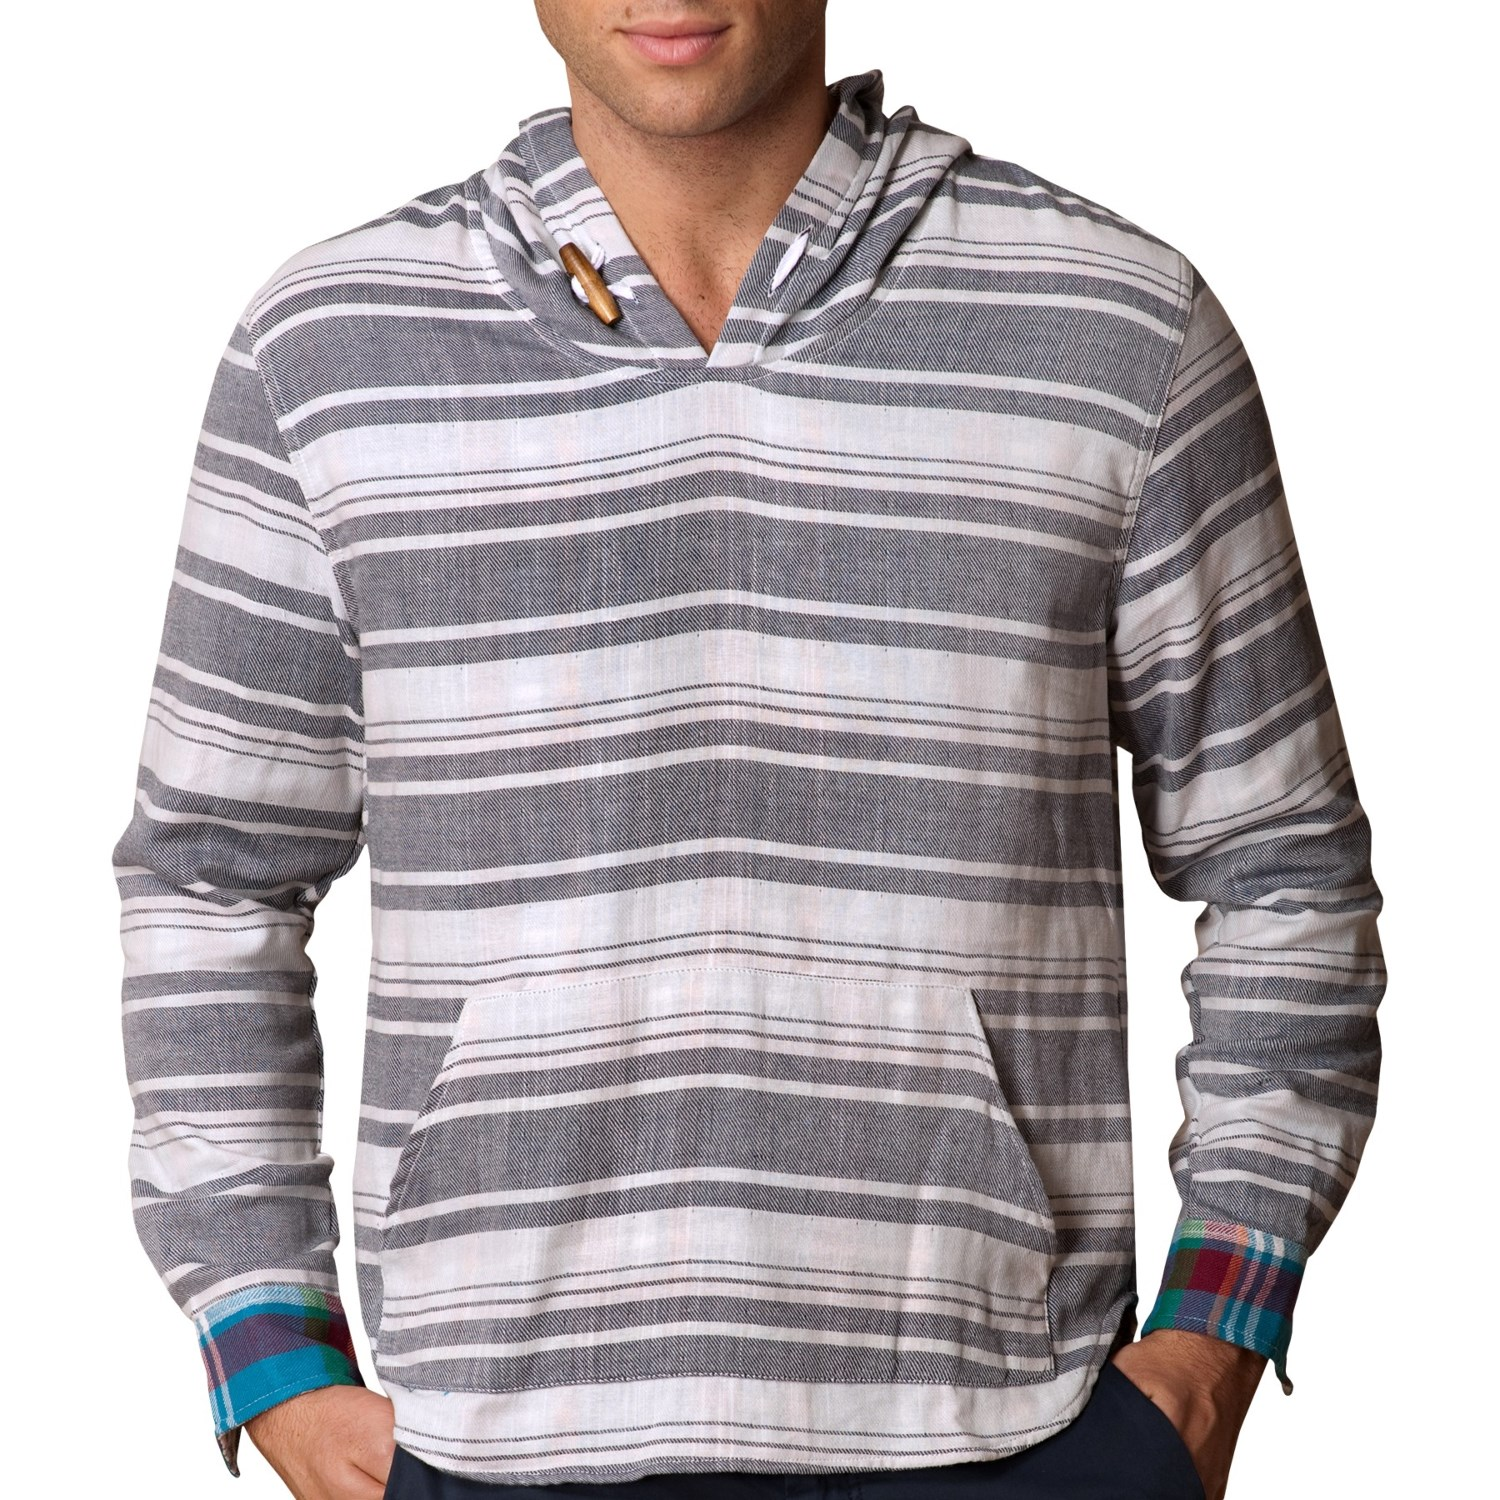 The baja hoodies for men that are sold by Mexican Threads are all unisex so they can be worn by women as well. The sizing is very true to mens sizes so if you are a man you should buy your normal size. If you are a woman, you need to buy down a size.